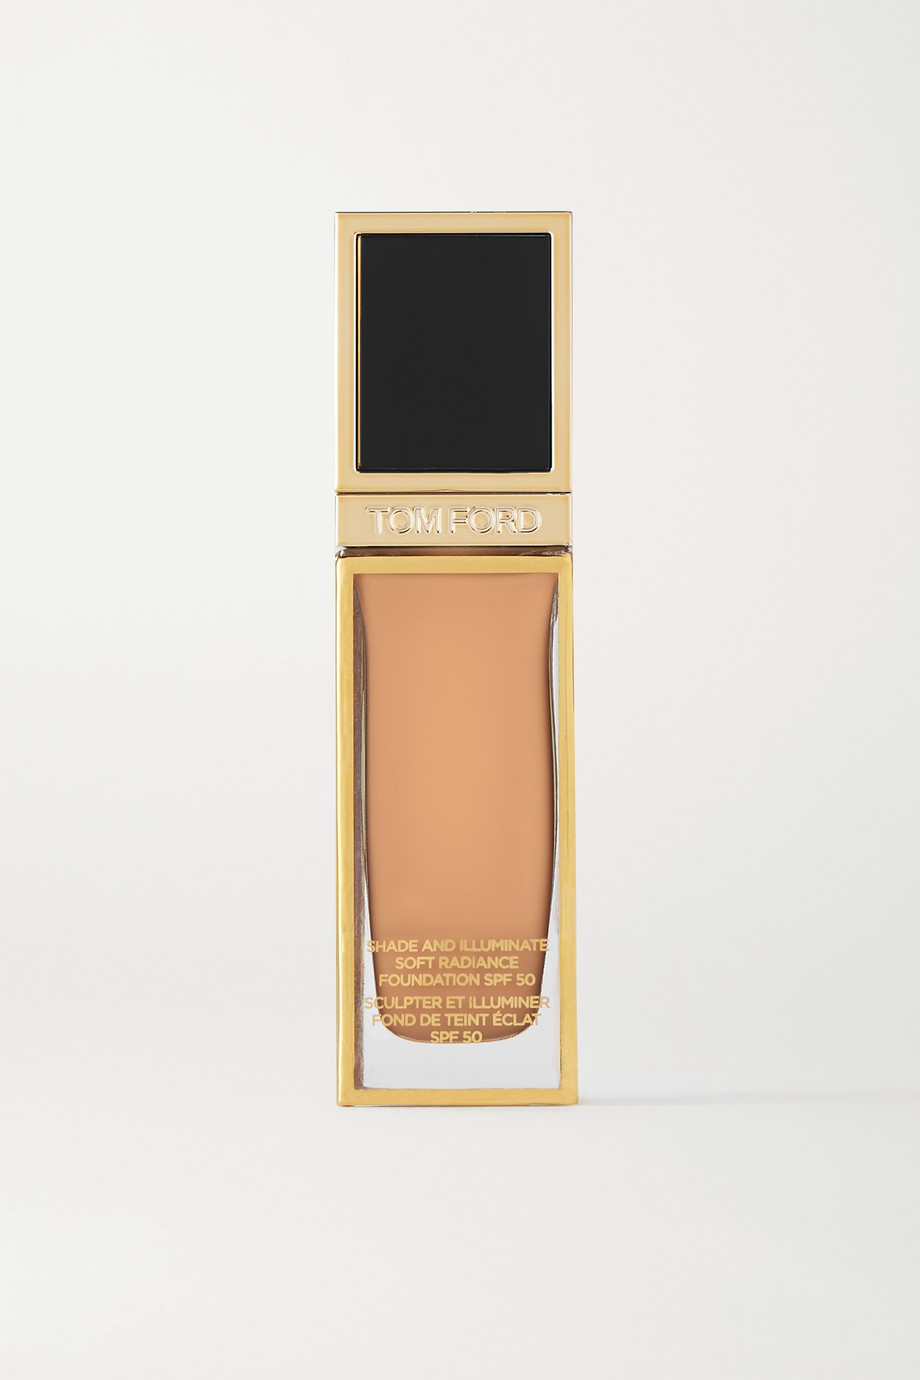 TOM FORD BEAUTY Shade and Illuminate Soft Radiance Foundation SPF50 - 6.5 Sable, 30ml